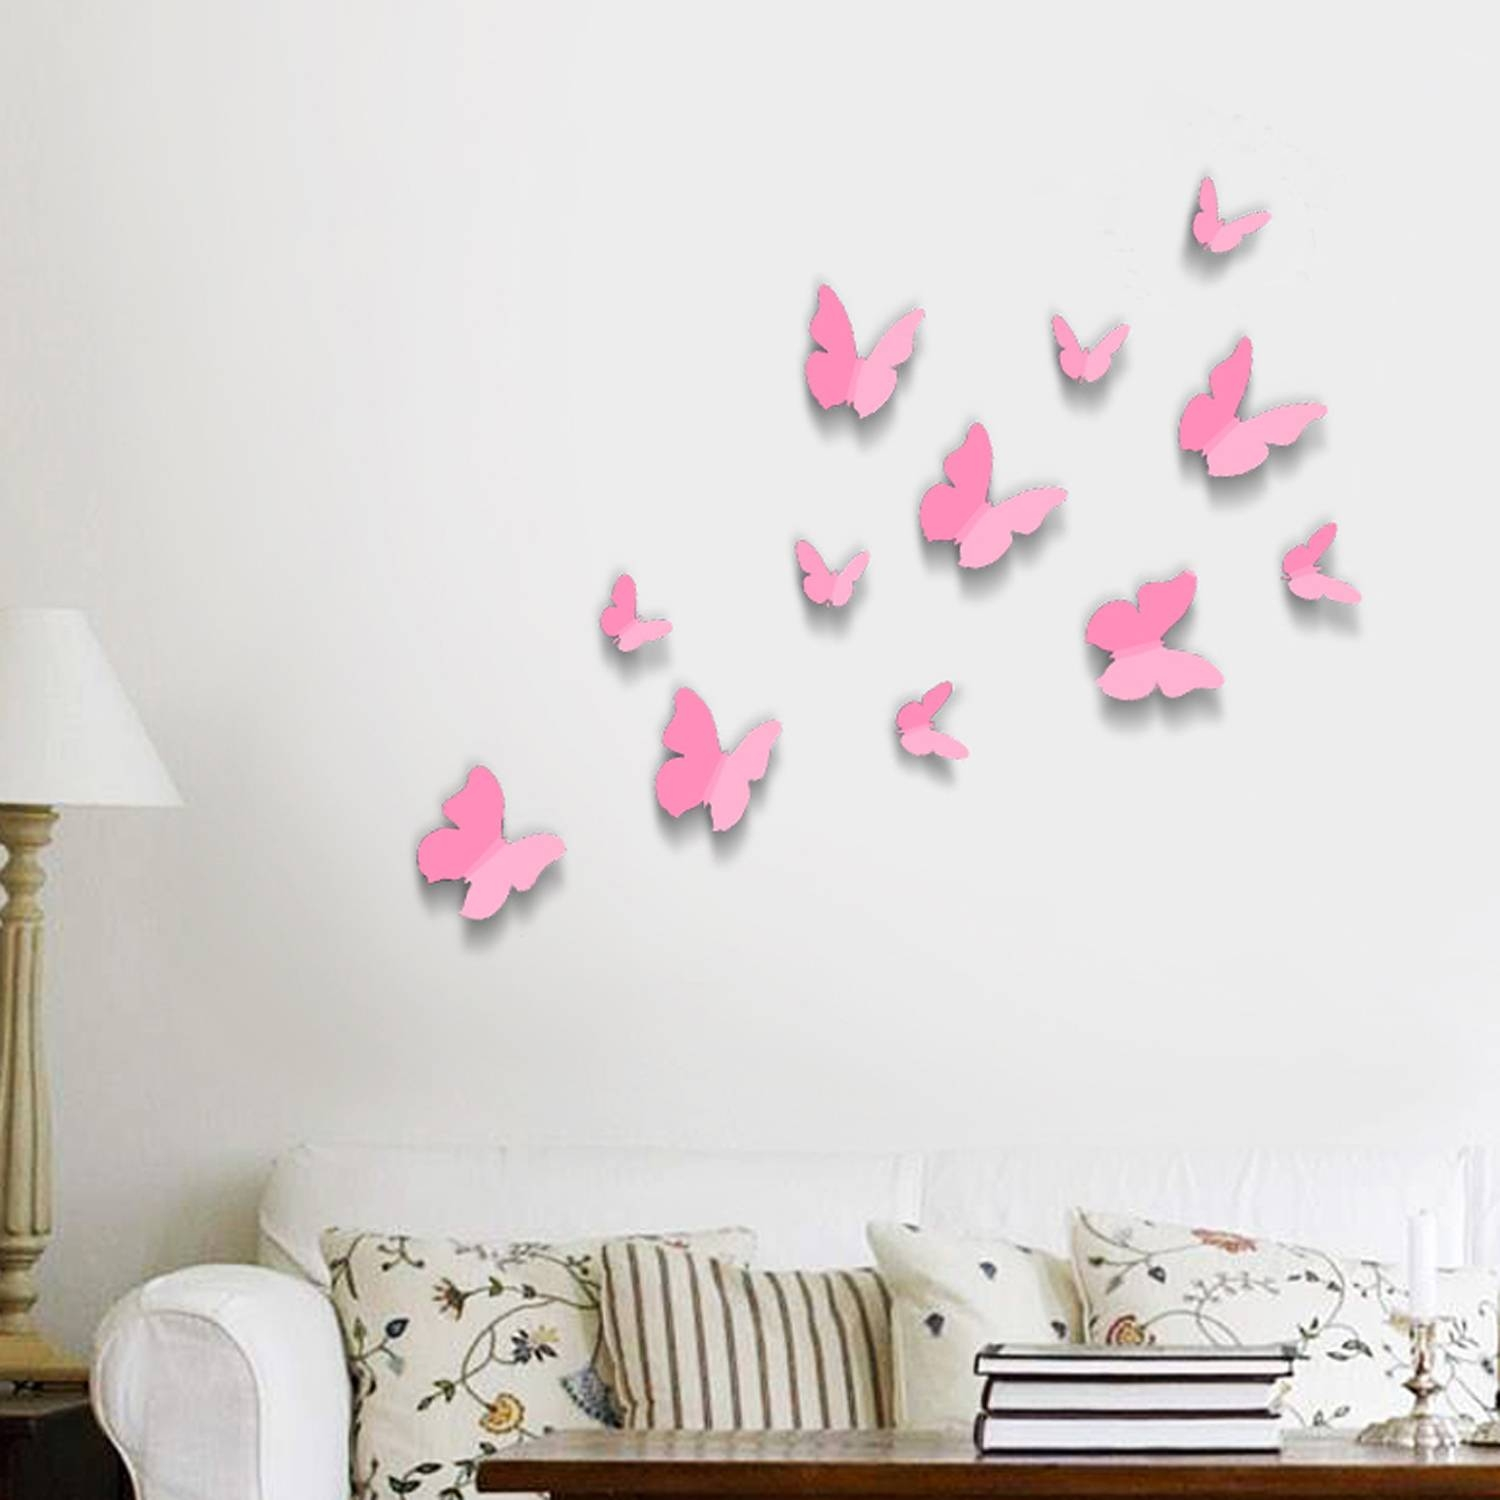 Pink 3D Butterflies Wall Art Stickers Throughout Recent 3D Butterfly Wall Art (View 18 of 20)